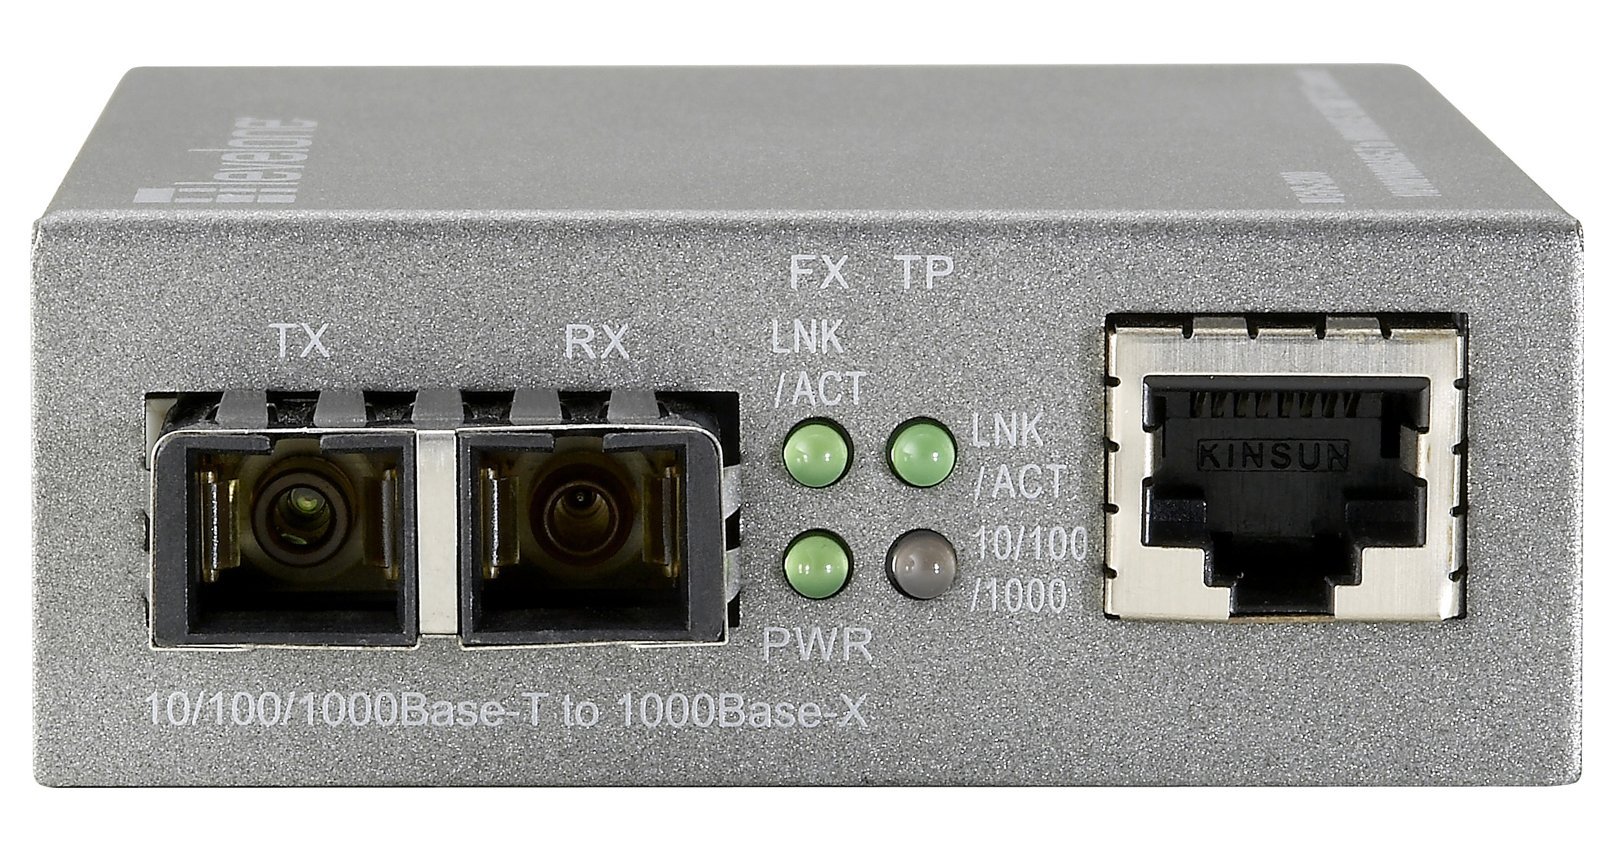 CP Technologies Web Smart 10/100/1000 Based-T to 1000SX MMF SC Media Converter (GVS-3200)